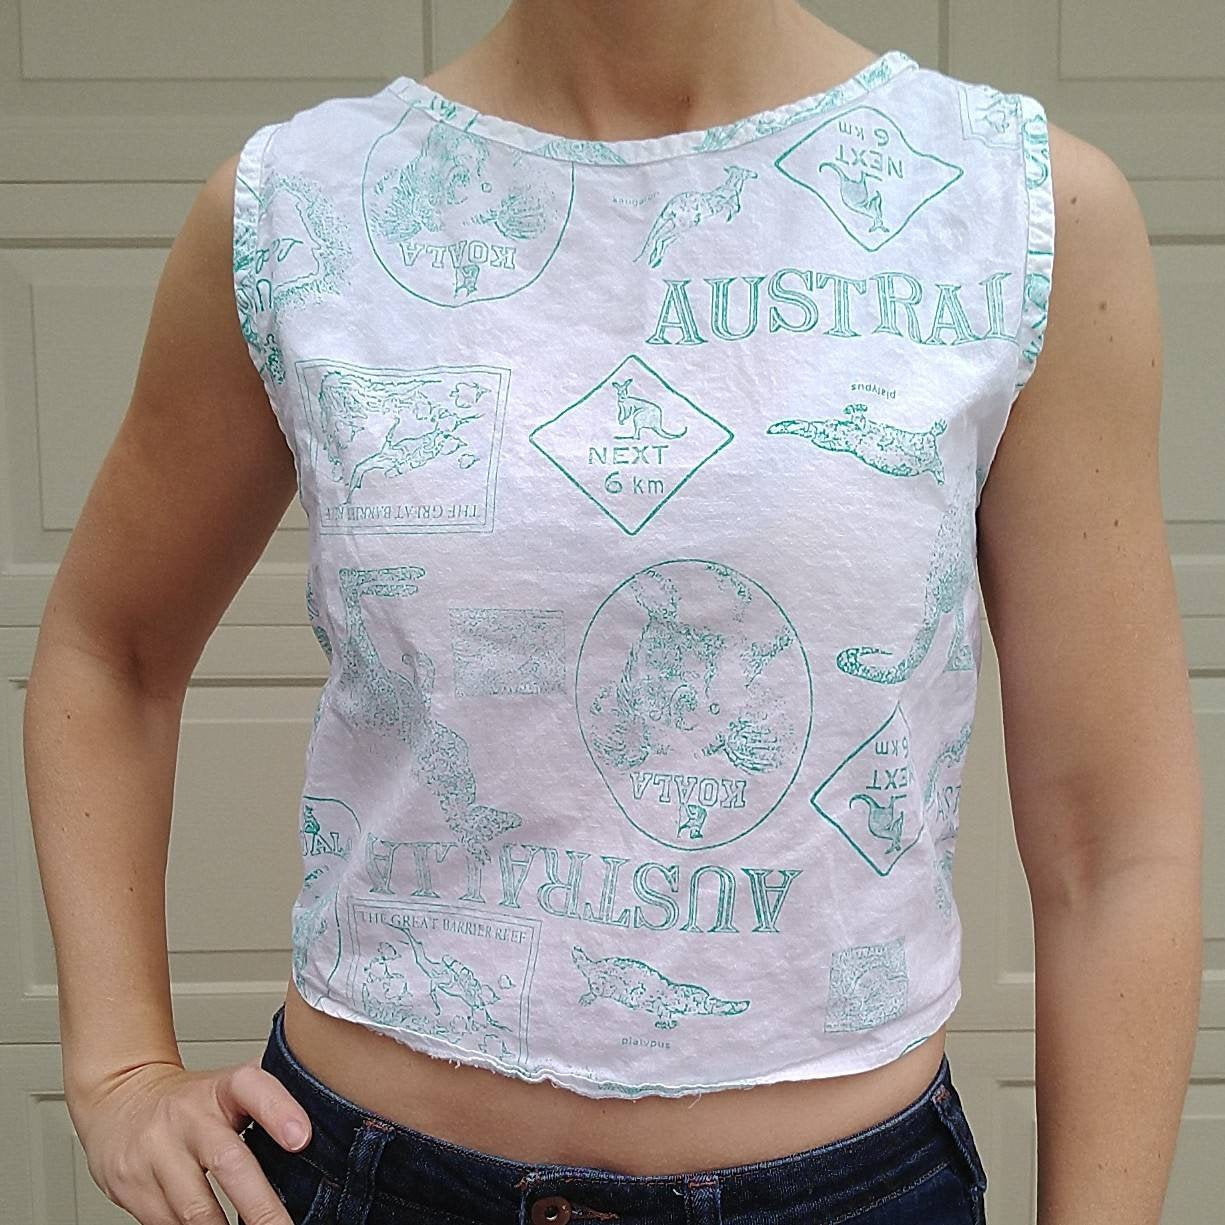 1980s AUSTRALIA CROPPED TANK top 80s S (G5)